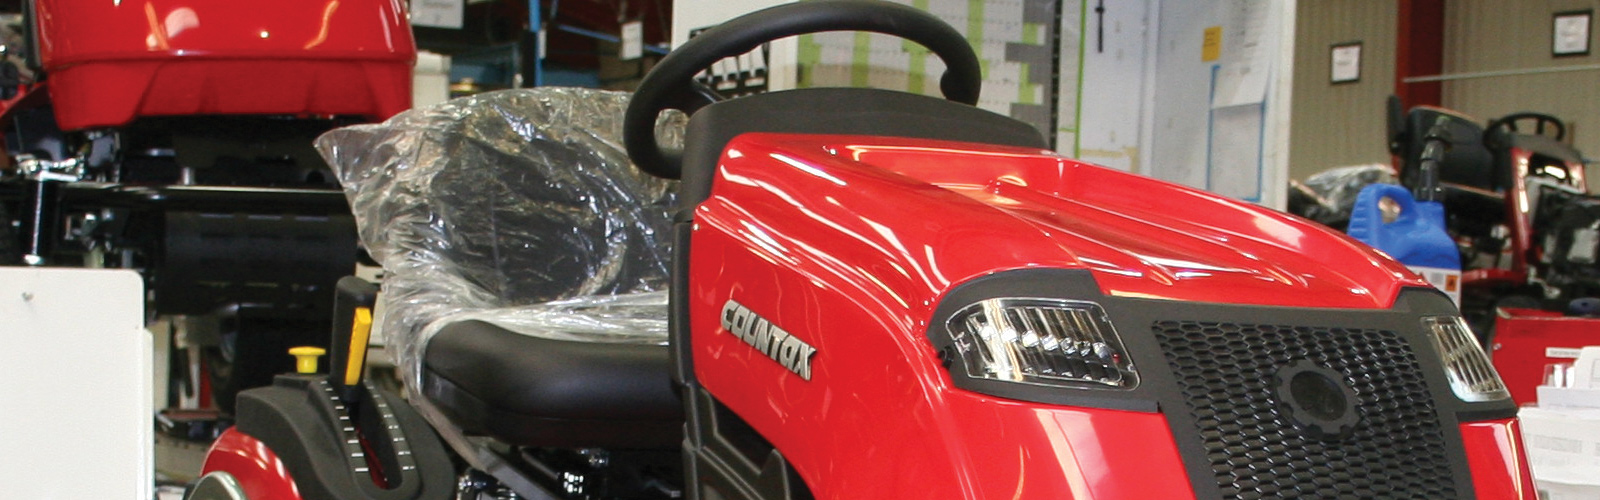 Countax lawn garden tractor mower on assembly line